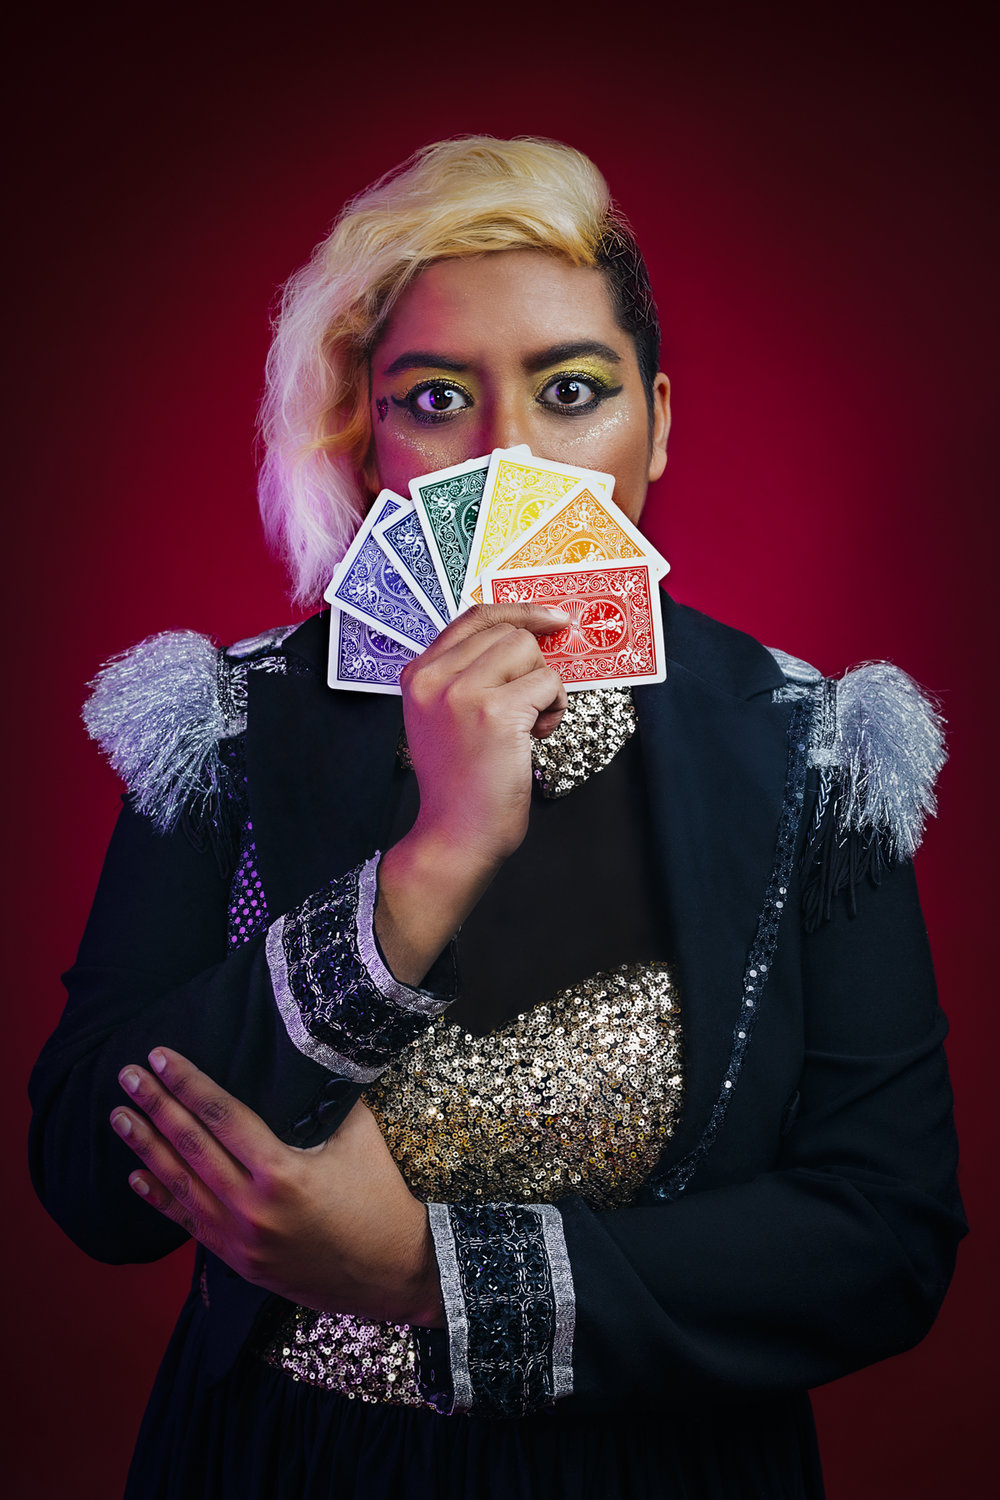 Poker Face [Official Queer Lady Magician Photoshoot 2018] by Alexis D Lea